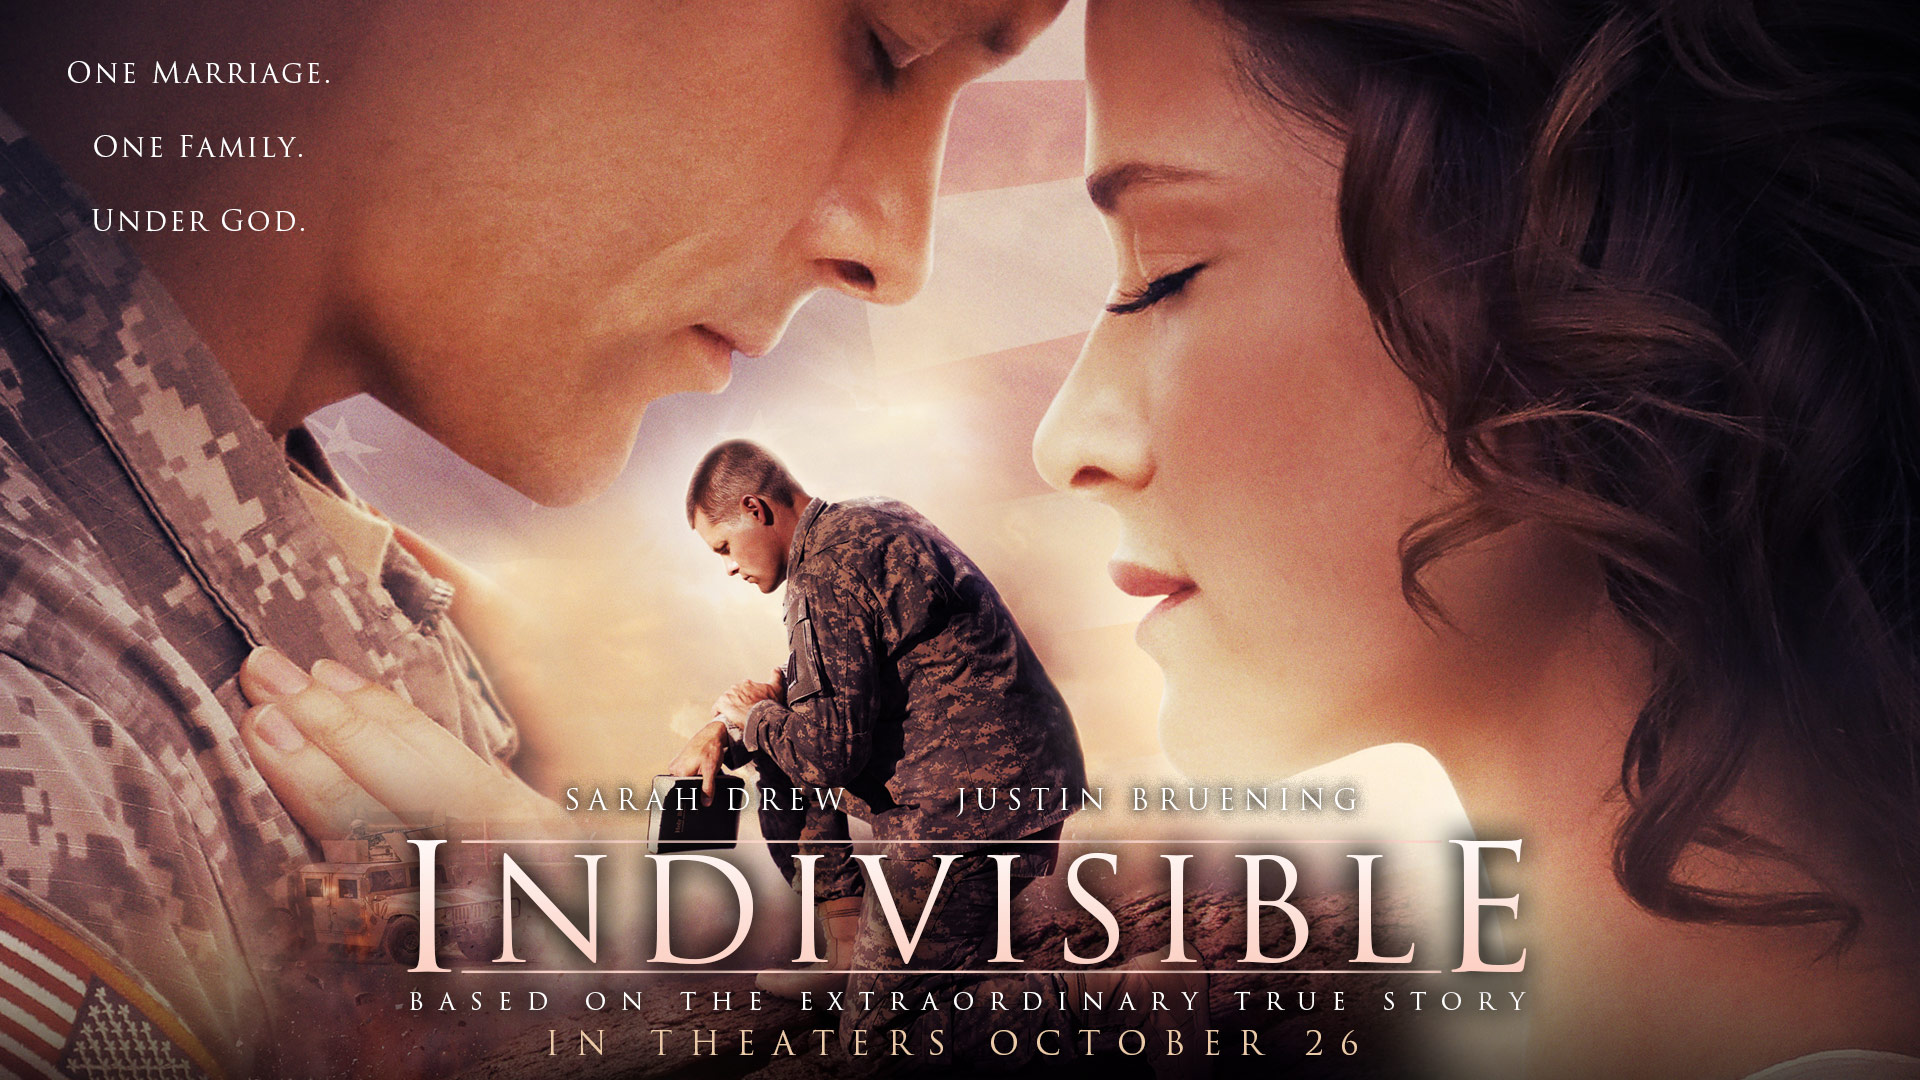 STIRRING NEW FILM 'INDIVISIBLE' PREMIERES NATIONWIDE OCT. 26